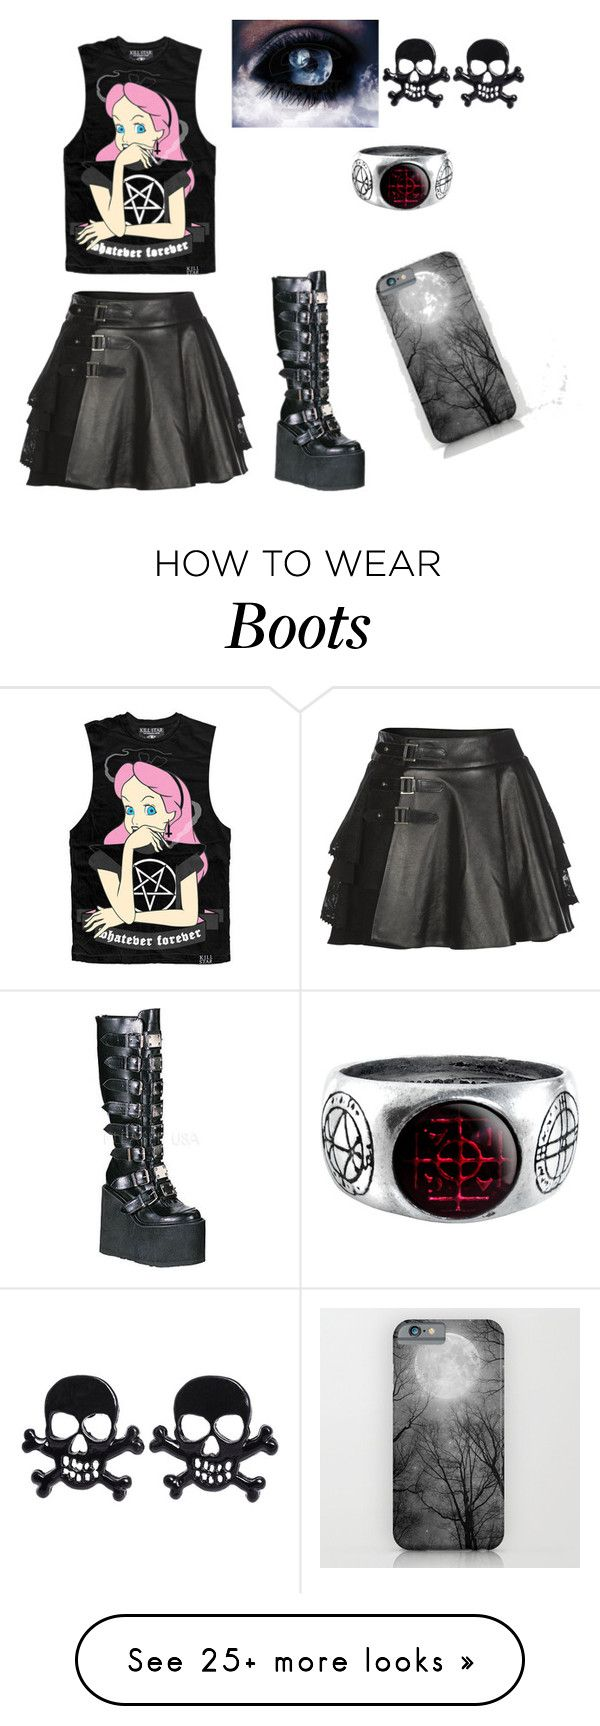 """Rocker Boots"" by gothlife on Polyvore featuring Mairi Mcdonald, Demonia, women's clothing, women's fashion, women, female, woman, misses and juniors"